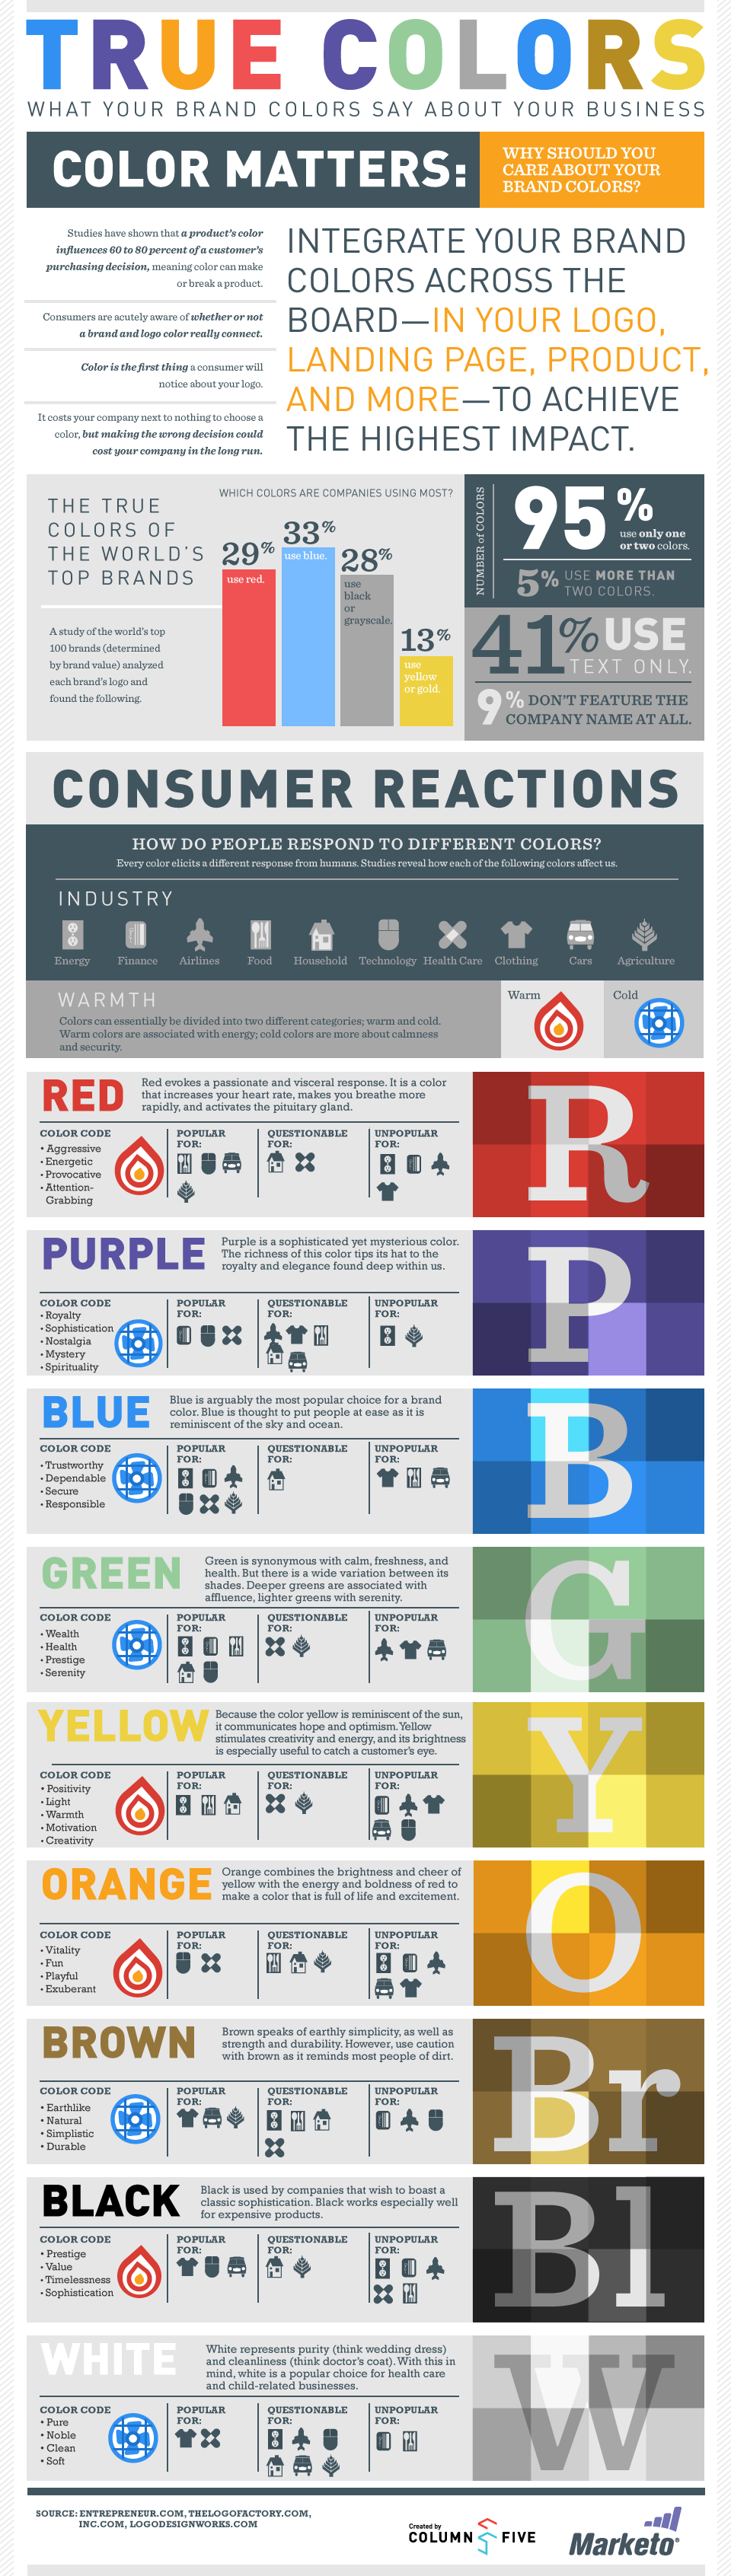 True Colors: What Your Brand Colors Say About Your Business by Marketo